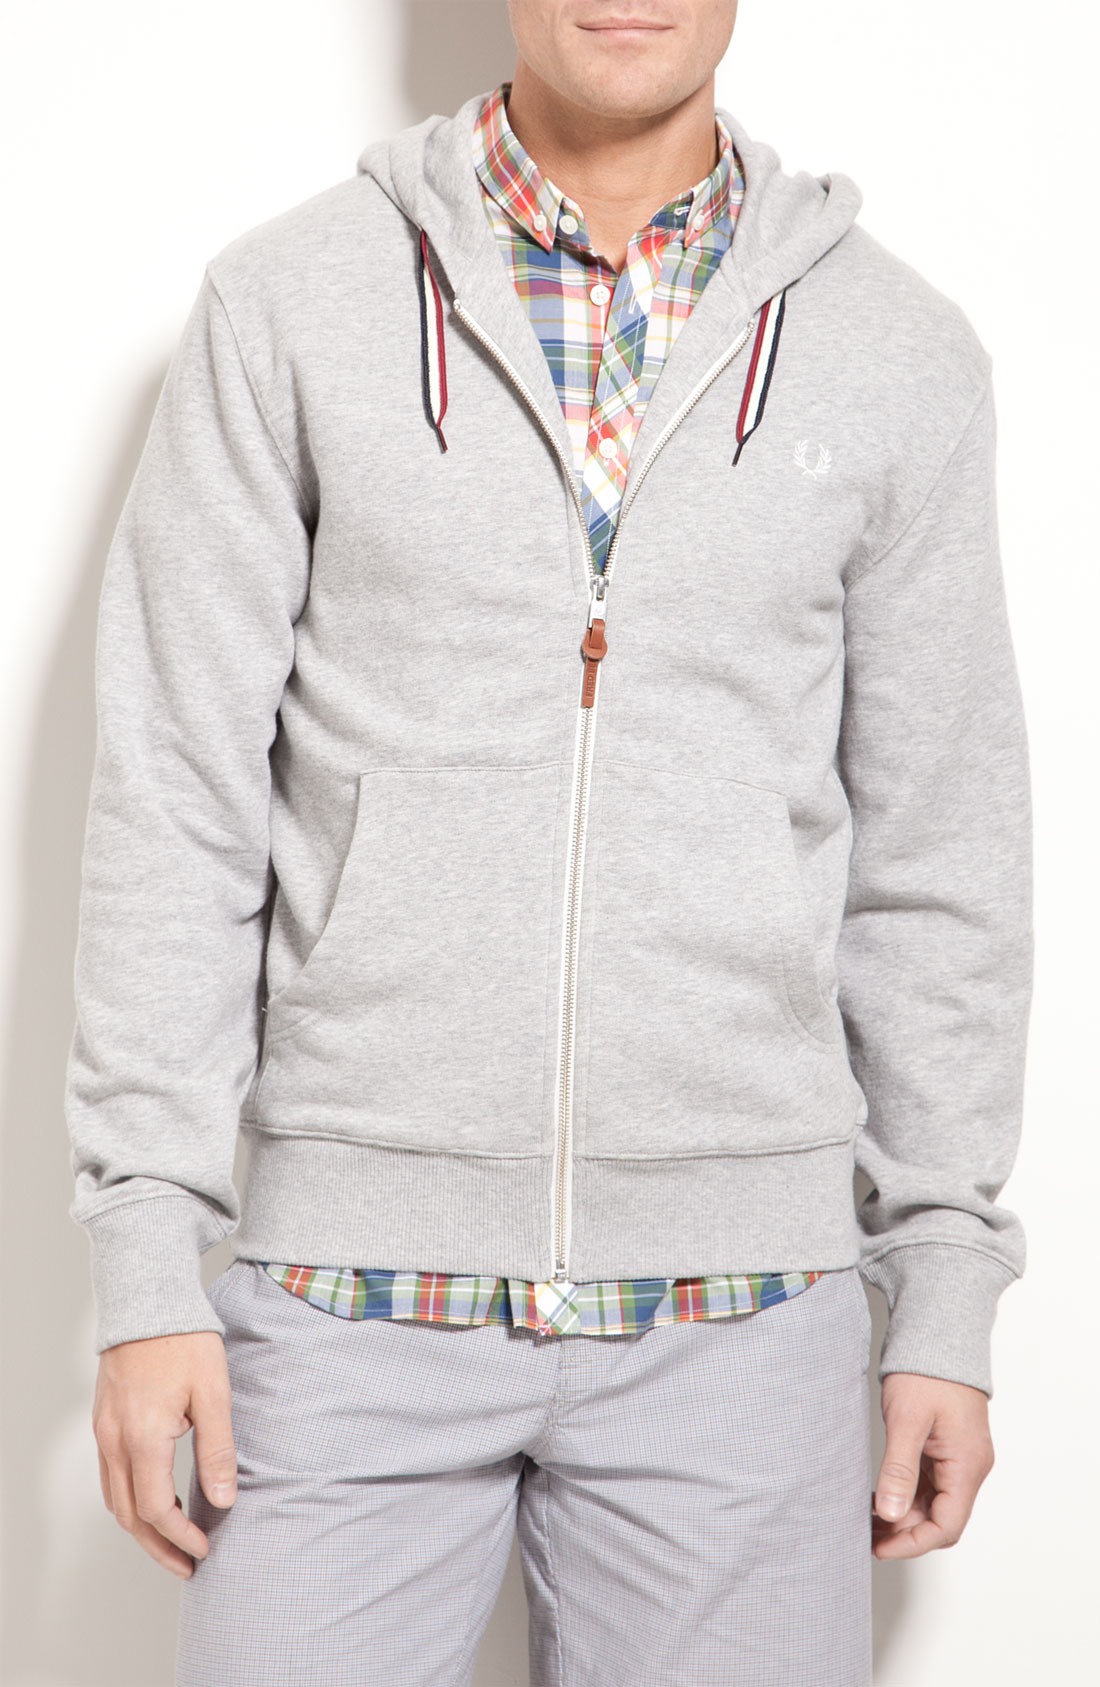 fred perry zip hoodie in gray for men lyst. Black Bedroom Furniture Sets. Home Design Ideas